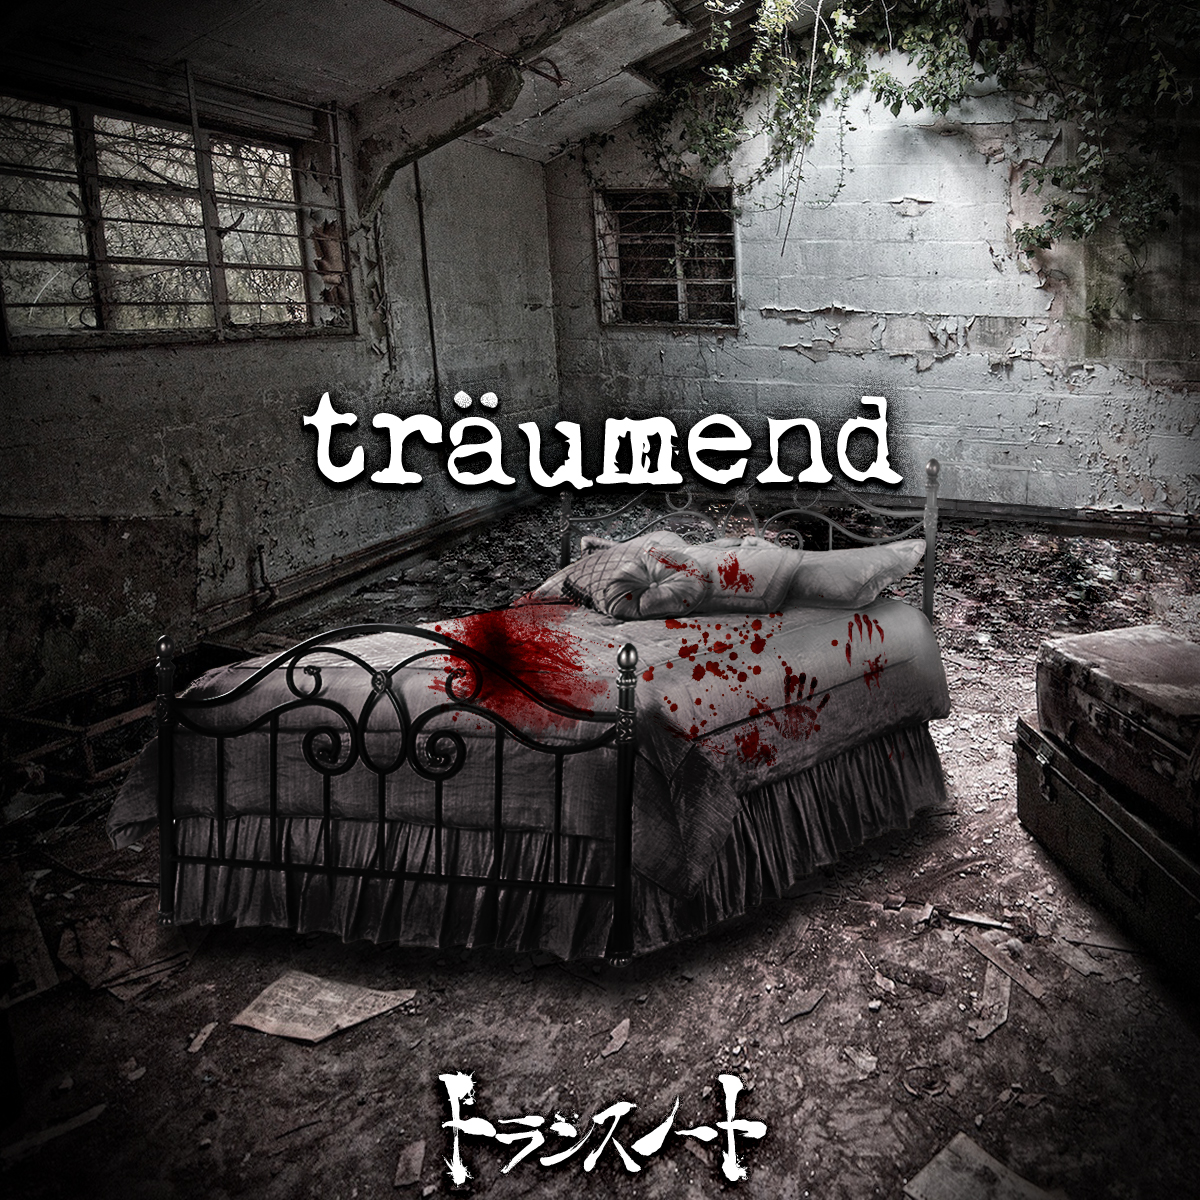 traumend